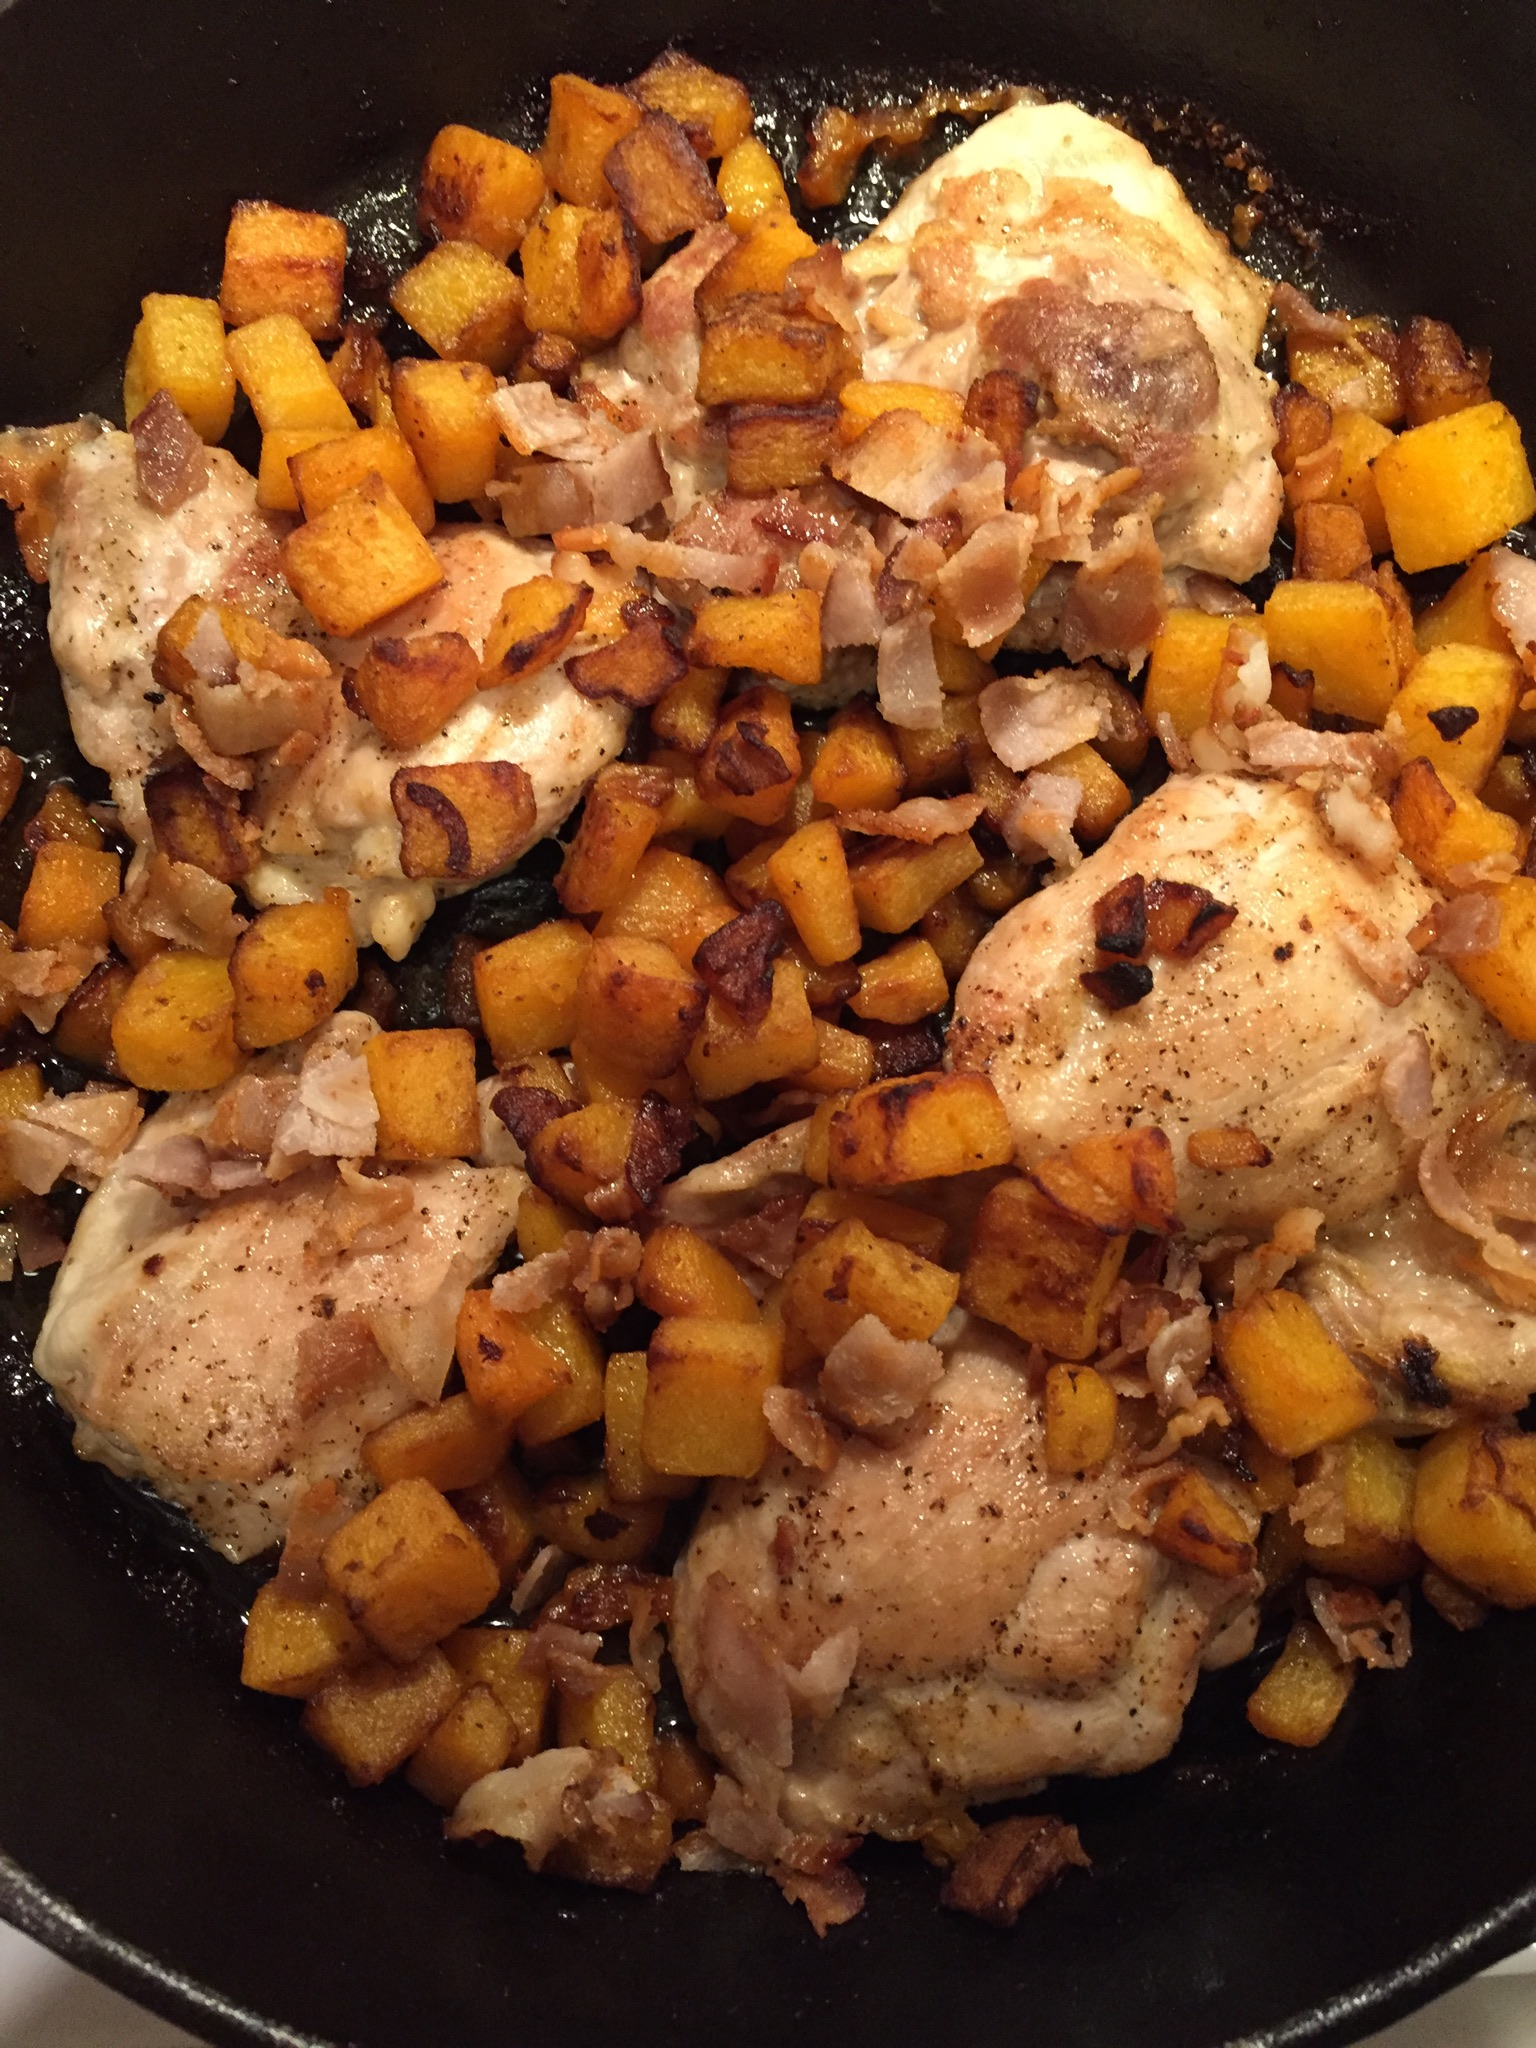 Chicken thighs, butternut squash, and W30 compliant bacon--my absolute fave!